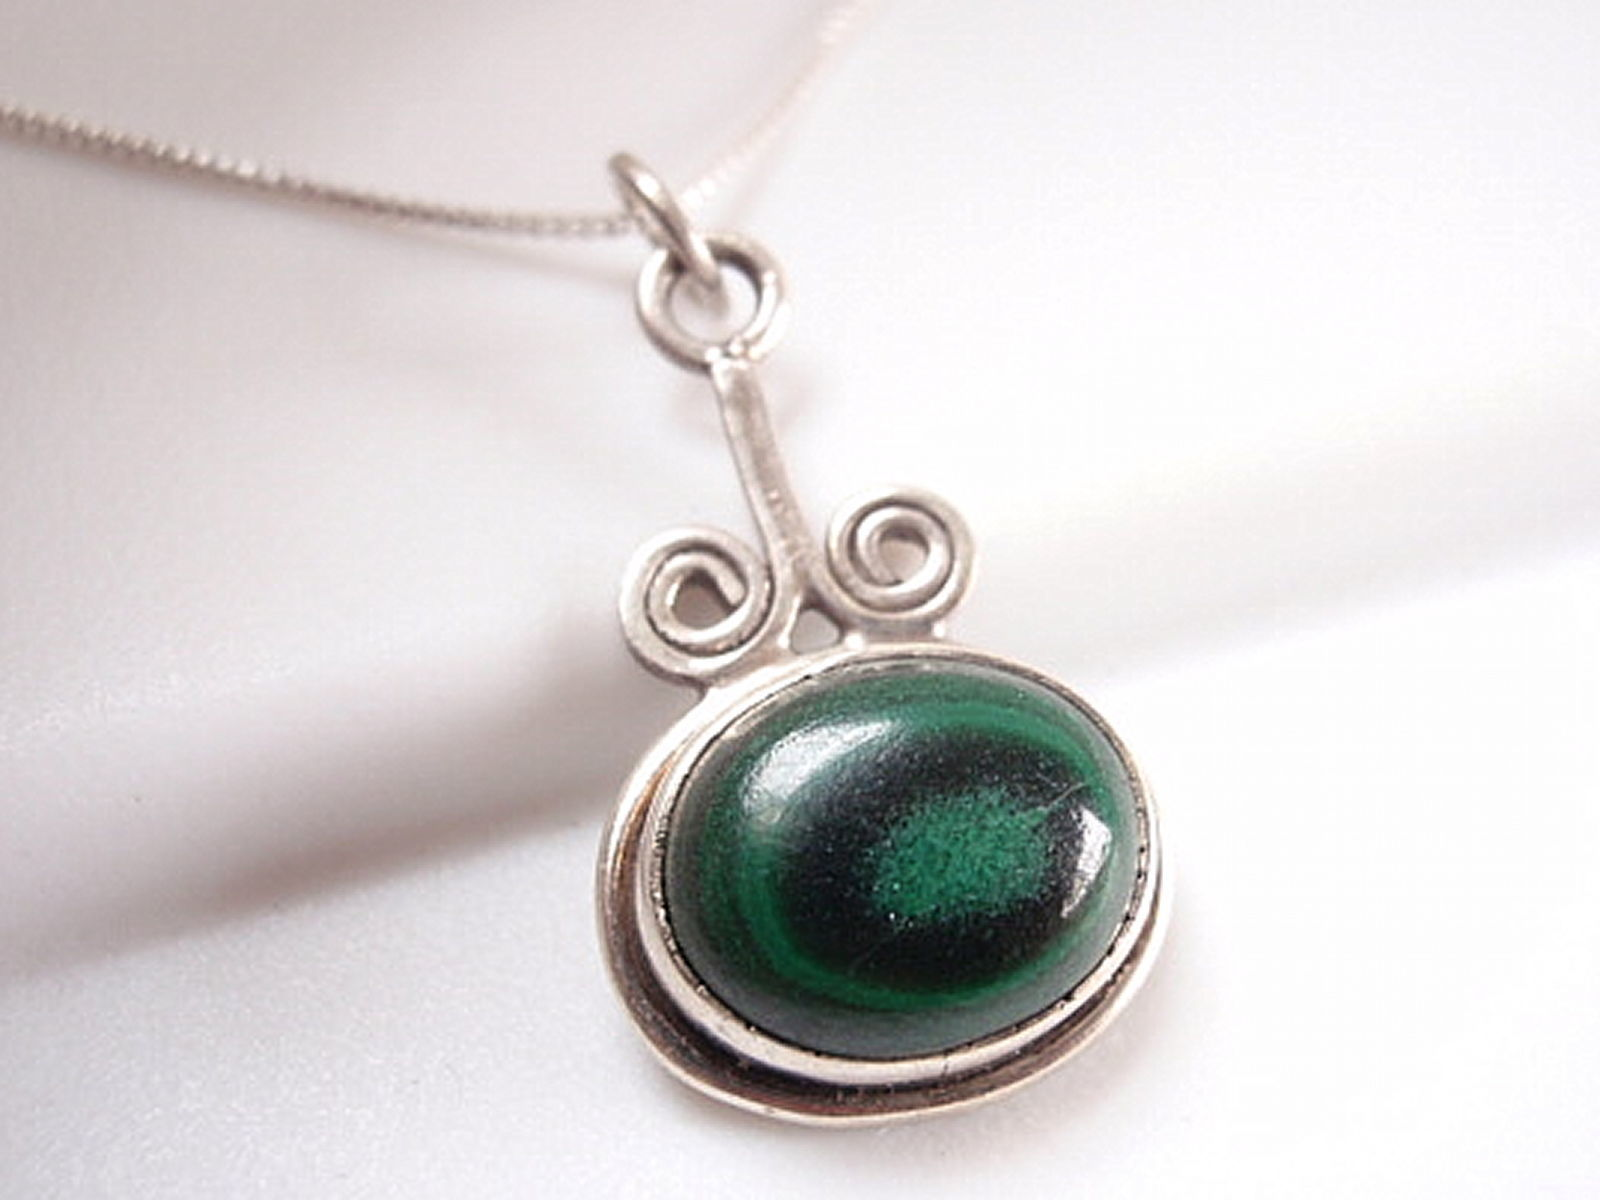 Primary image for Green Malachite Swirled 925 Sterling Silver Necklace Corona Sun Jewelry